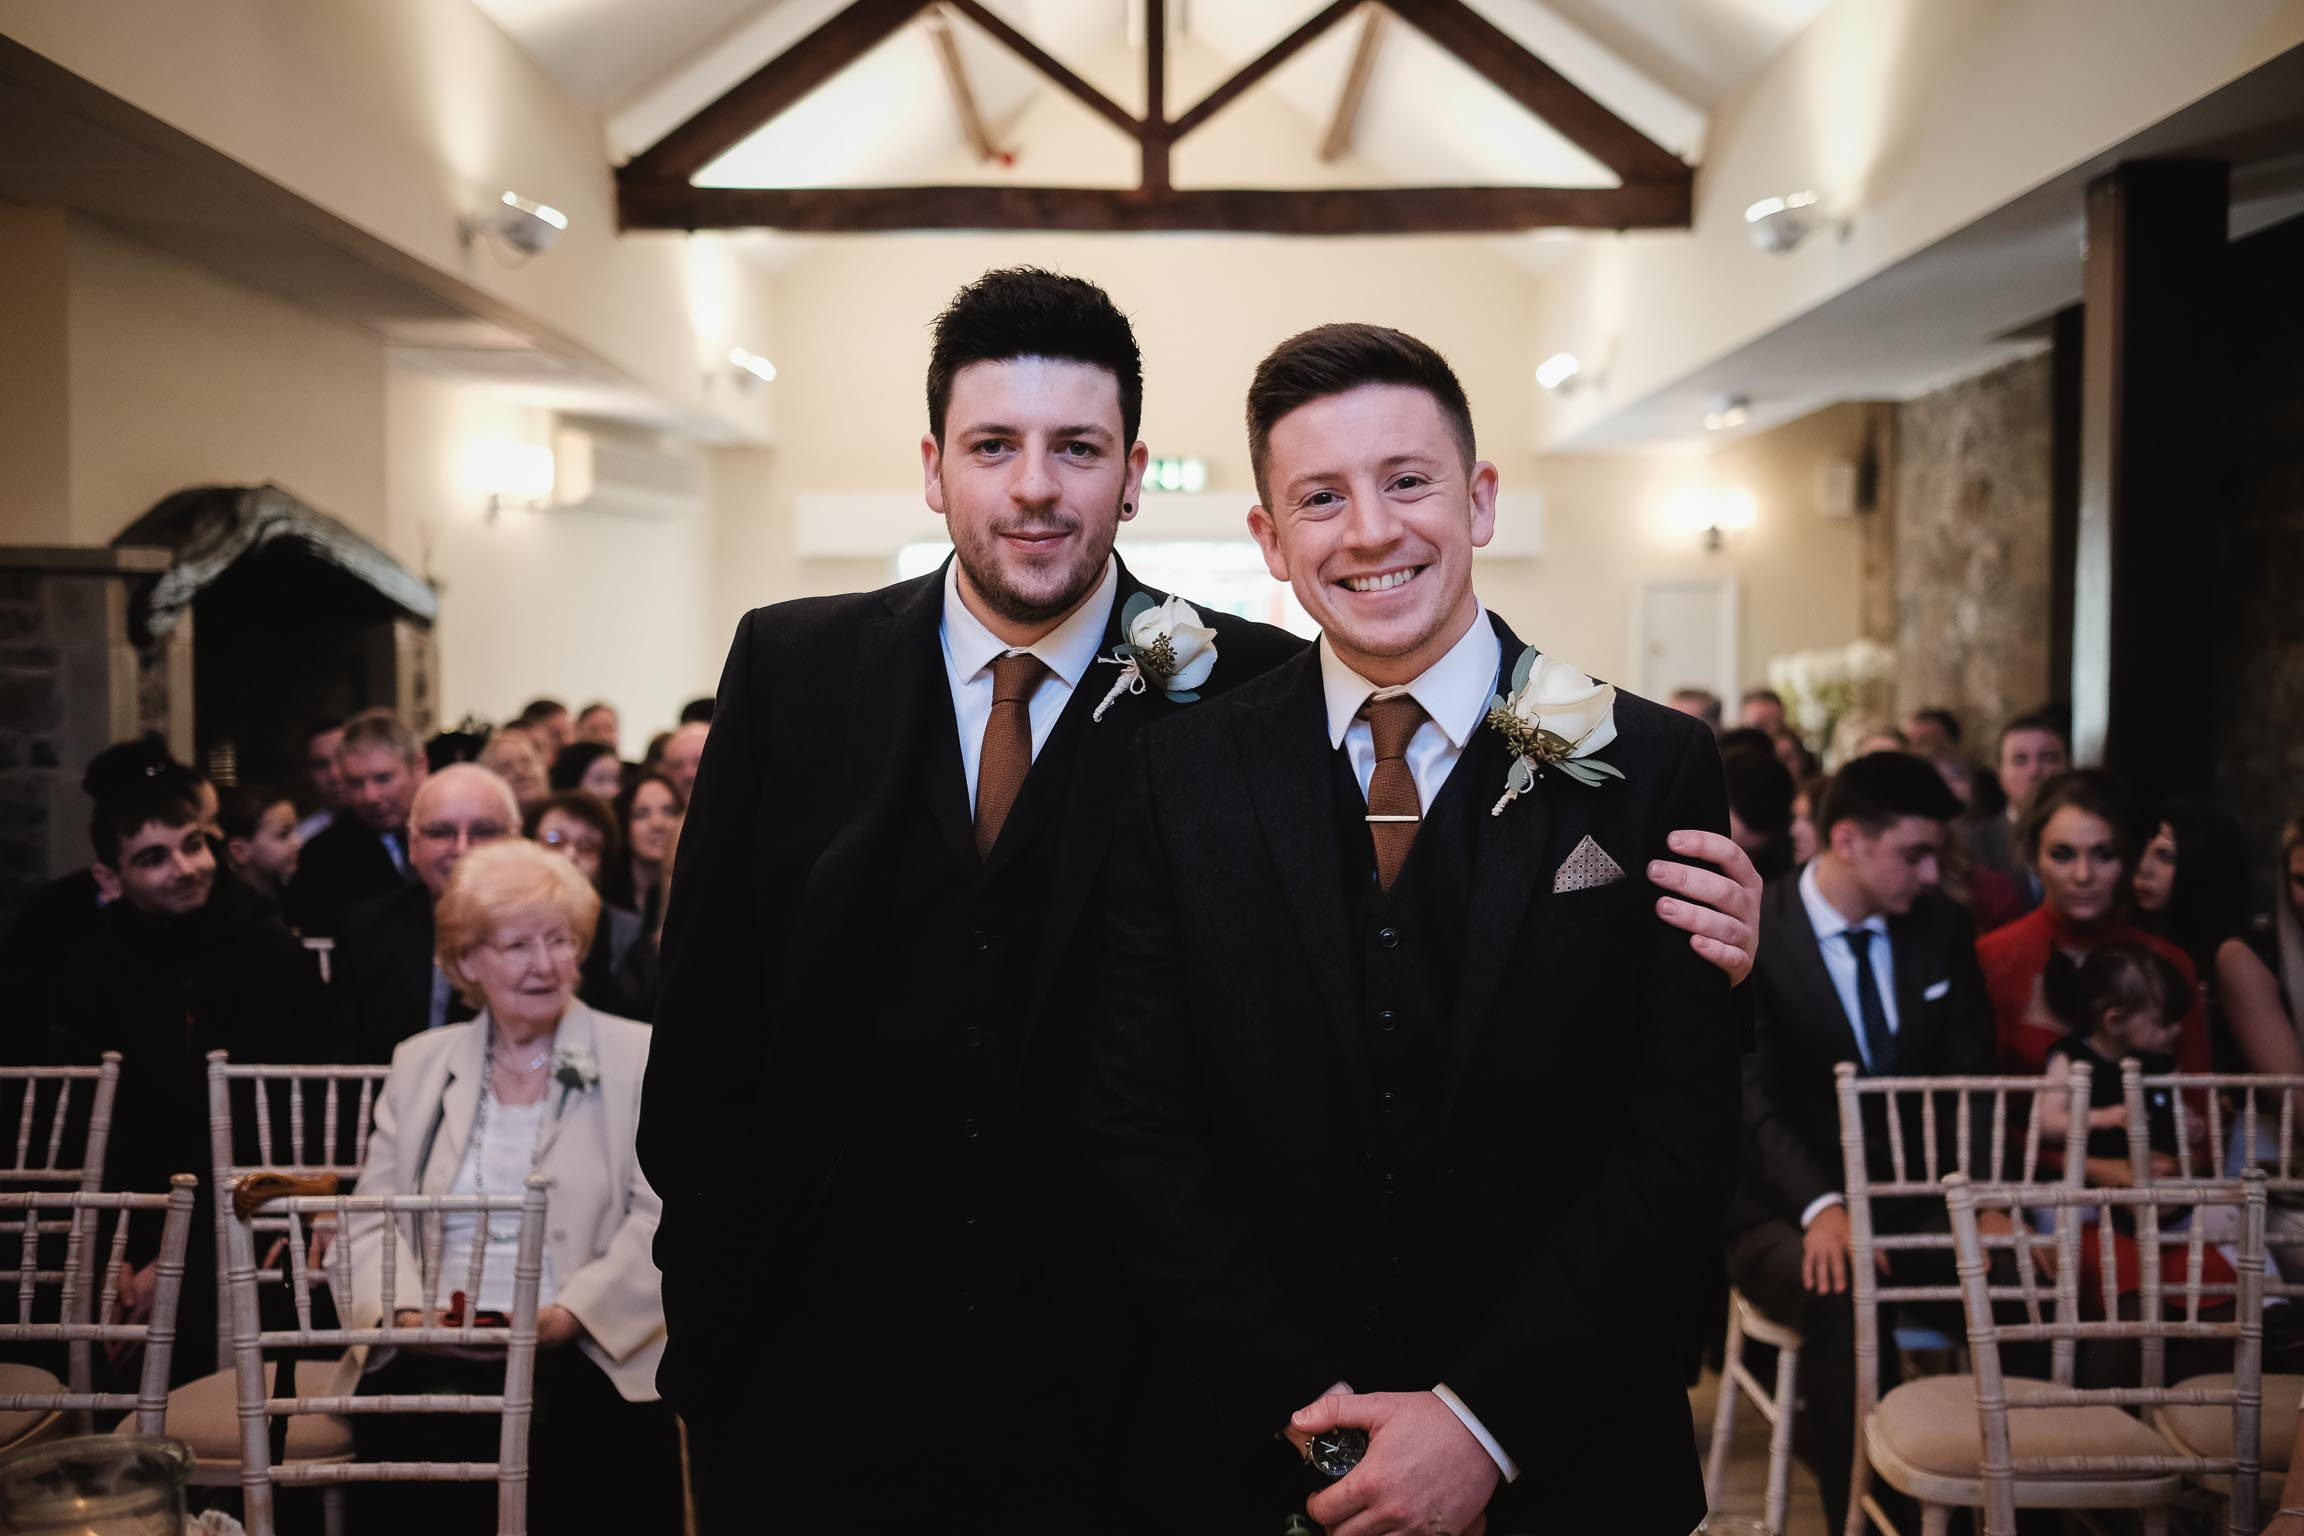 Stirk house clitheroe lancashire wedding photographer covering a documentary photography style  (31 of 85).jpg